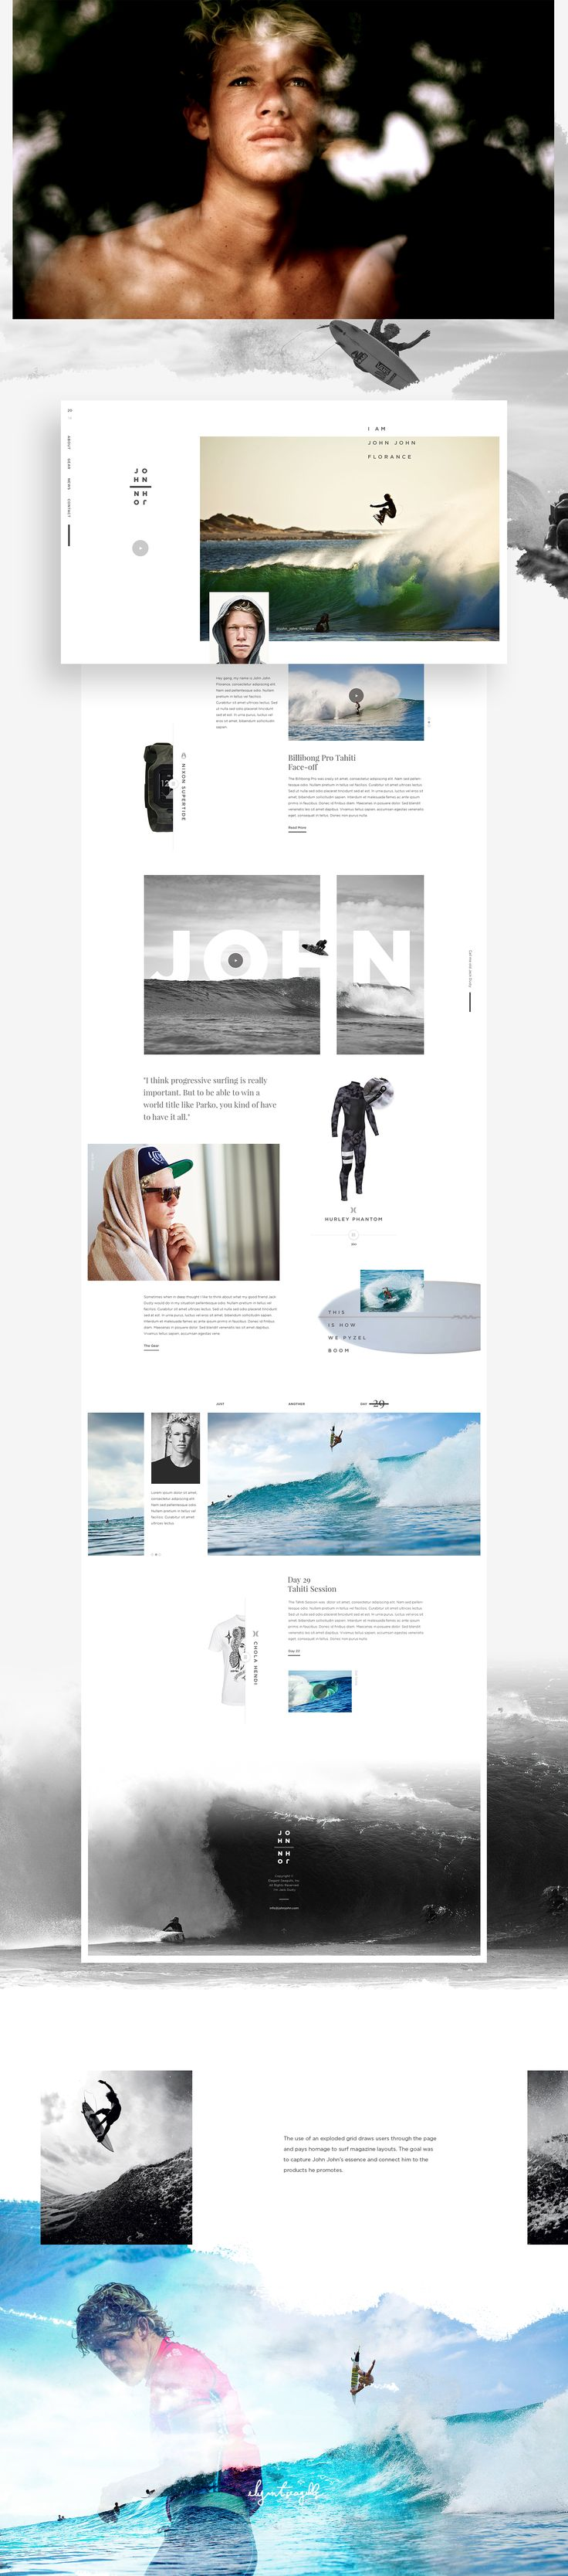 """John """"John"""" Florence is a pro surfer known as one of the most dominant pipe surfers of this era. He is constantly pushing the boundaries of tube riding and aerial assaults. His progressive surf style helped inspire this concept's overall direction."""